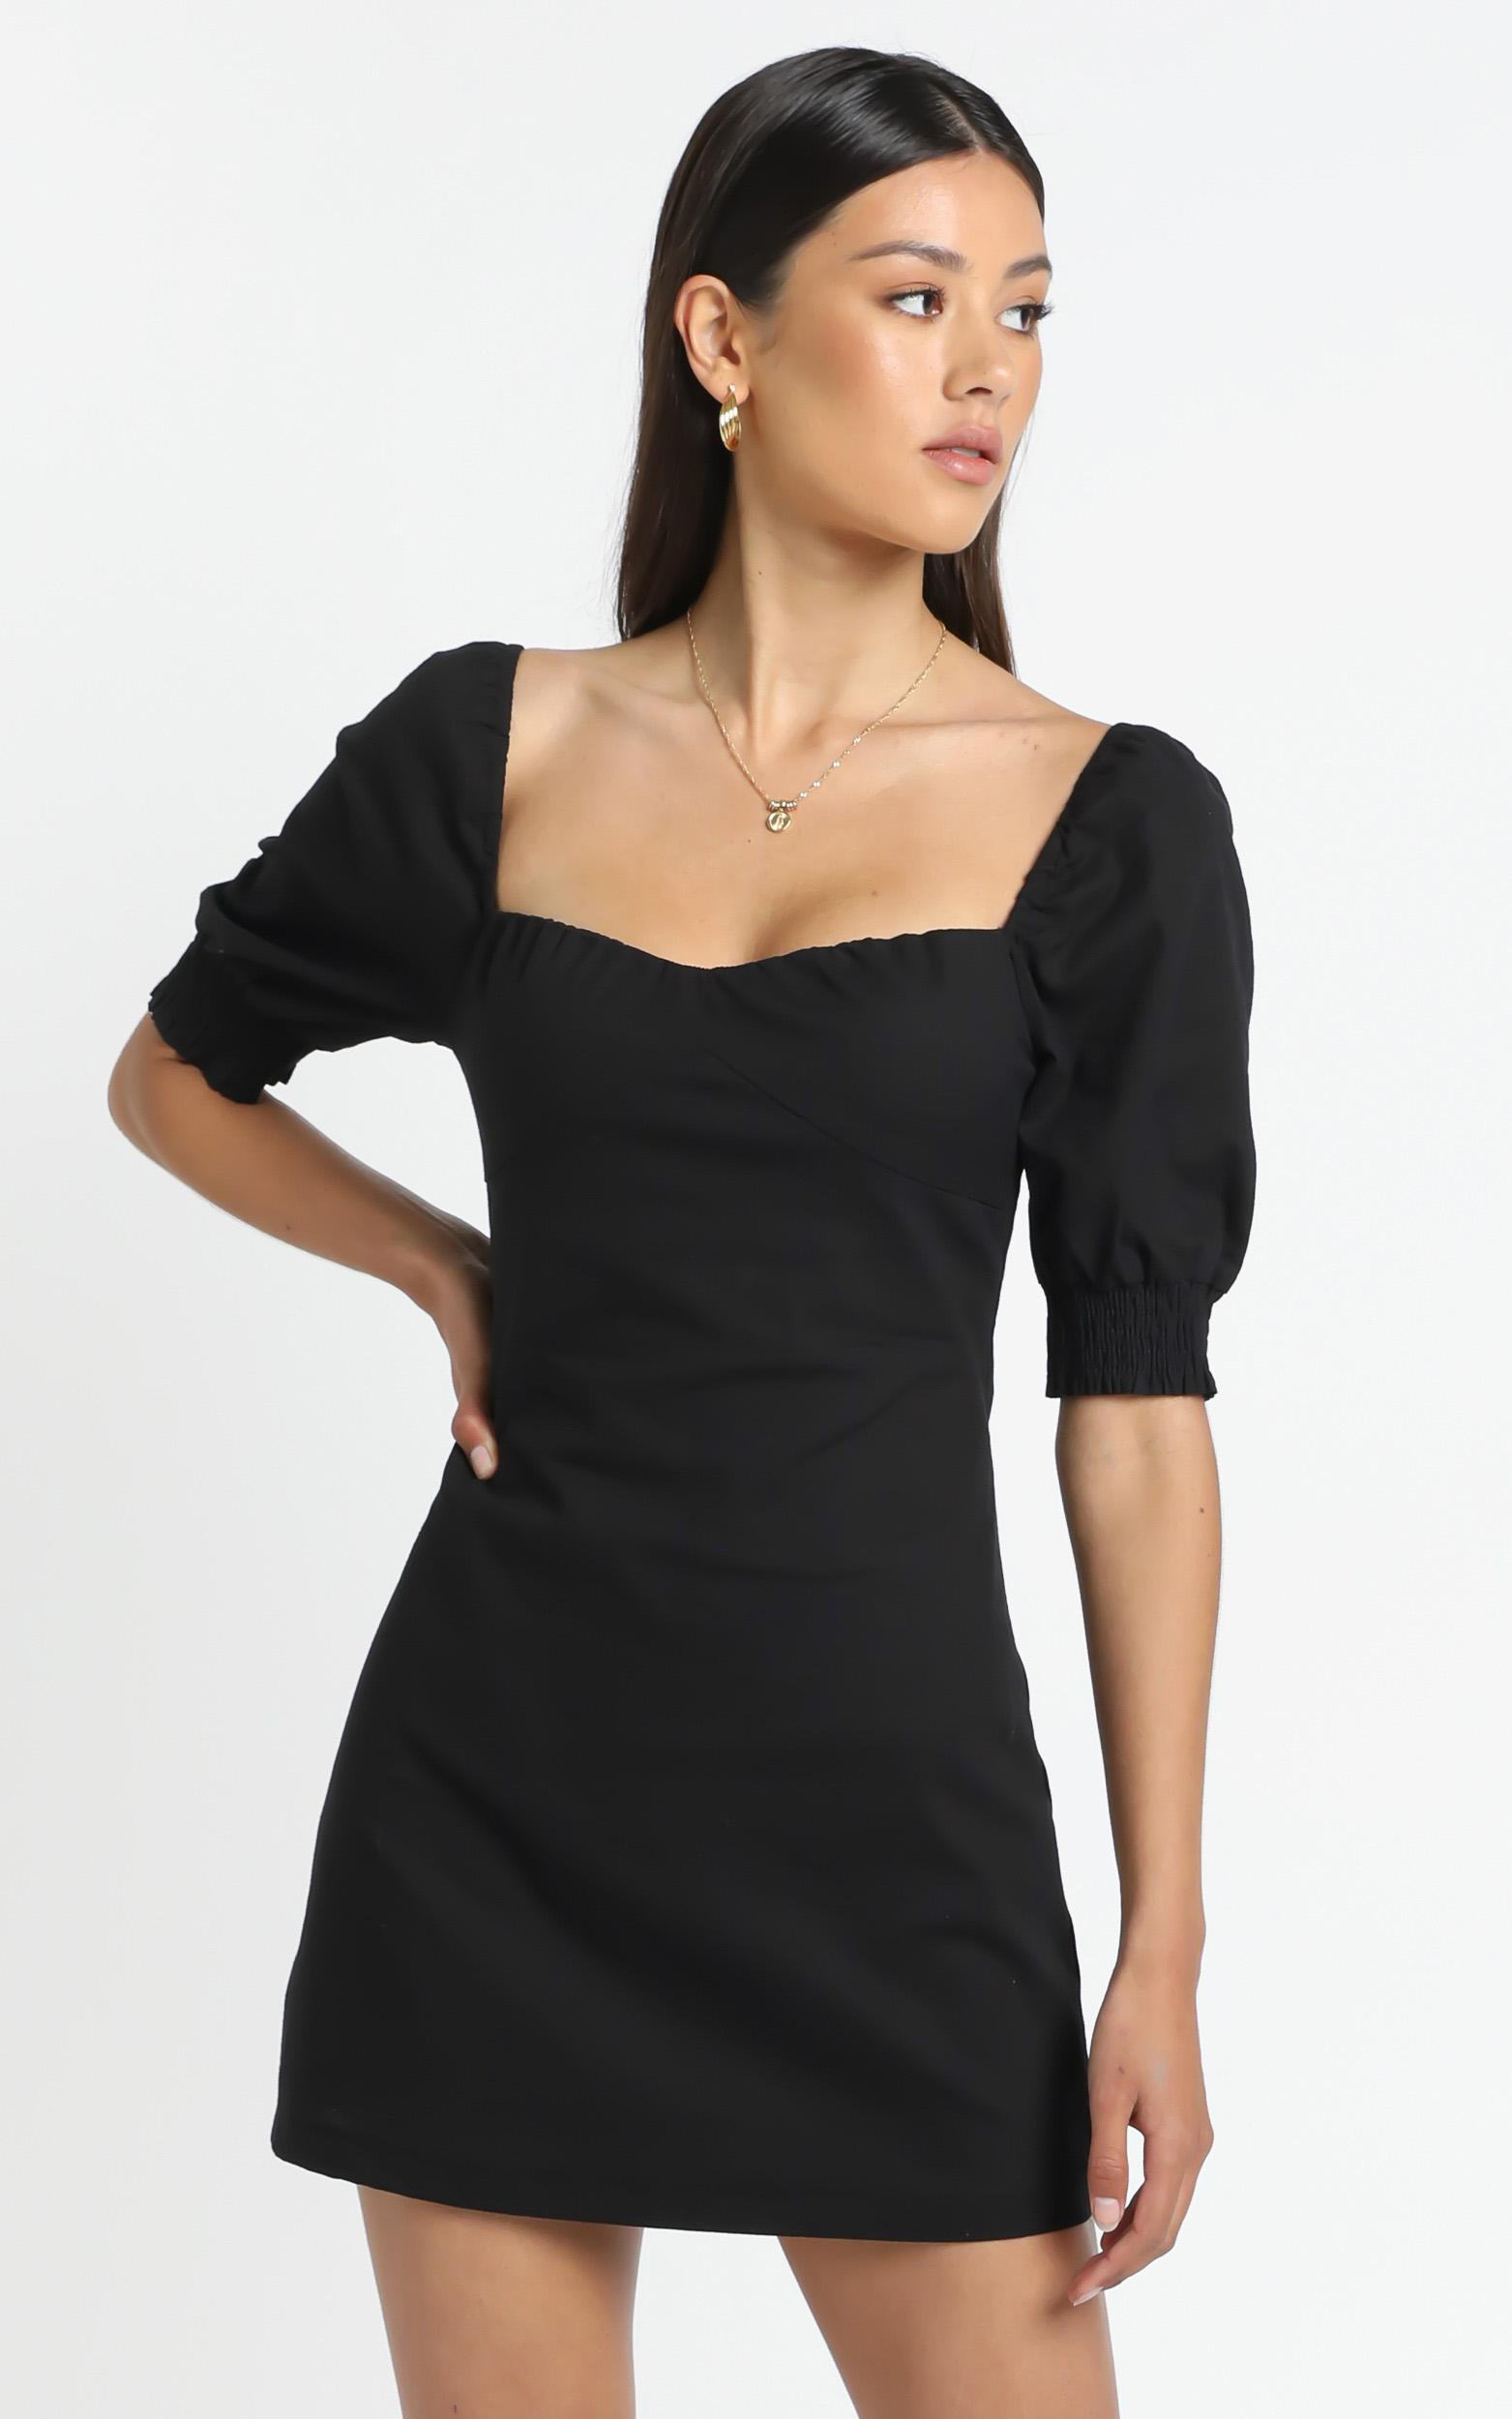 Sneaky Chatter Dress in Black Linen Look - 20 (XXXXL), Black, hi-res image number null